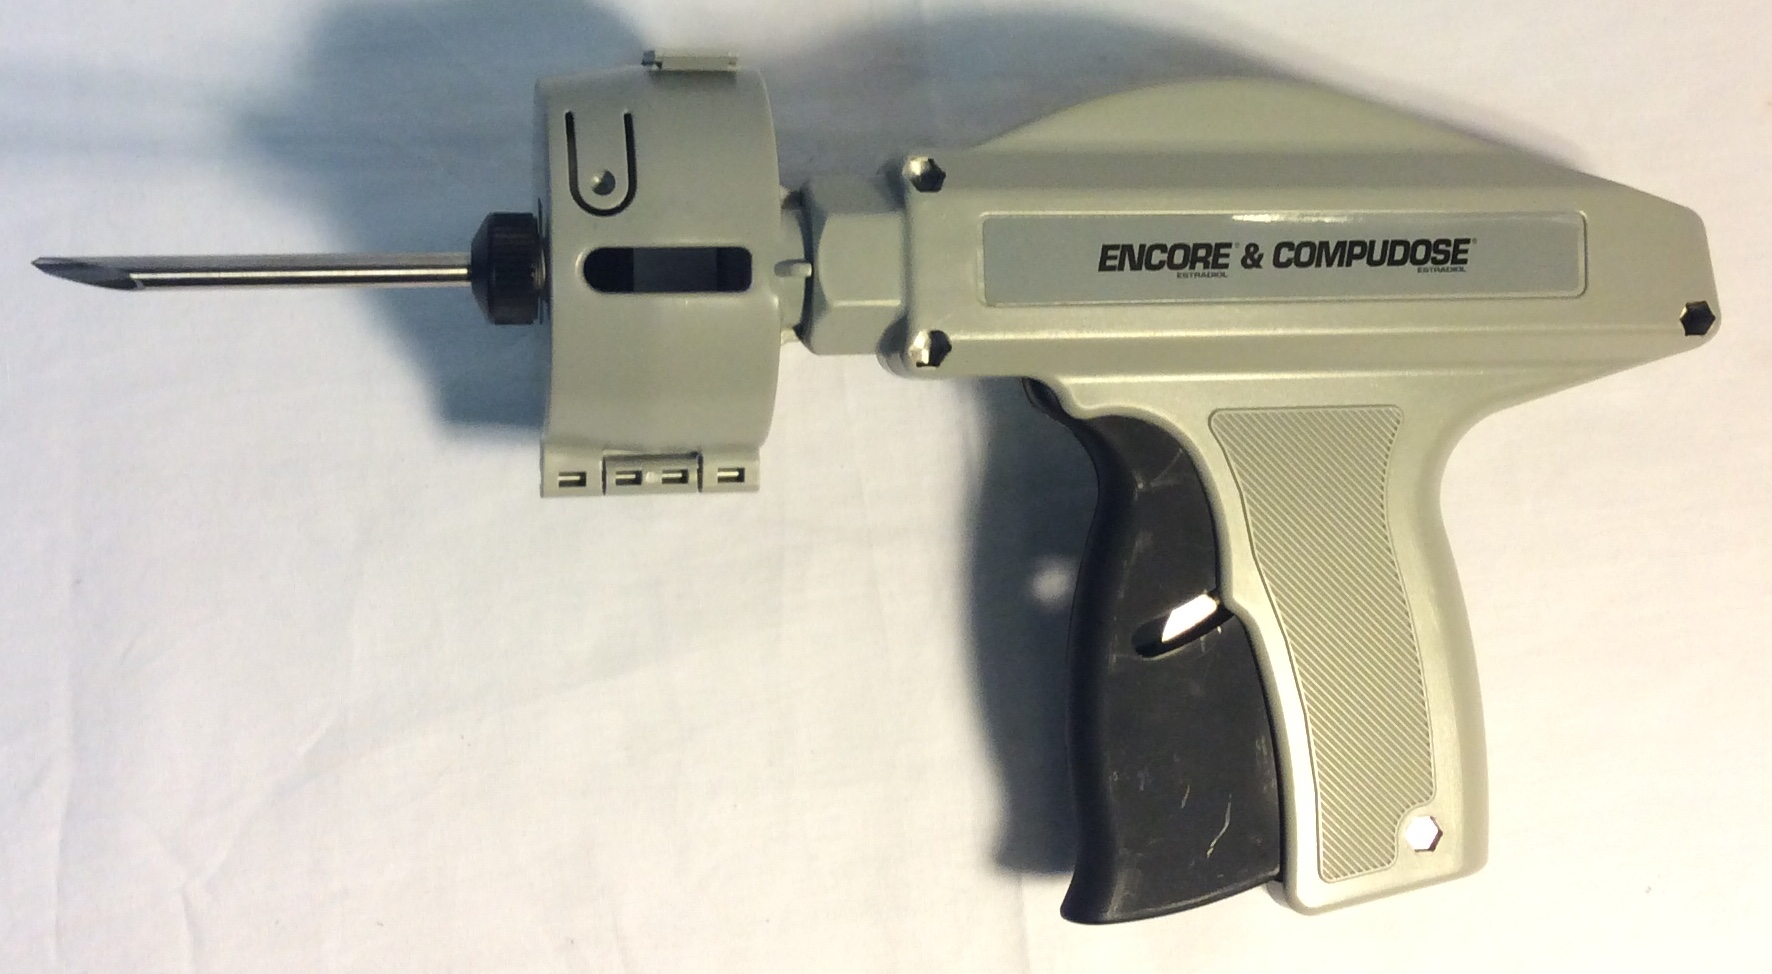 Compudose Implanter gun, grey